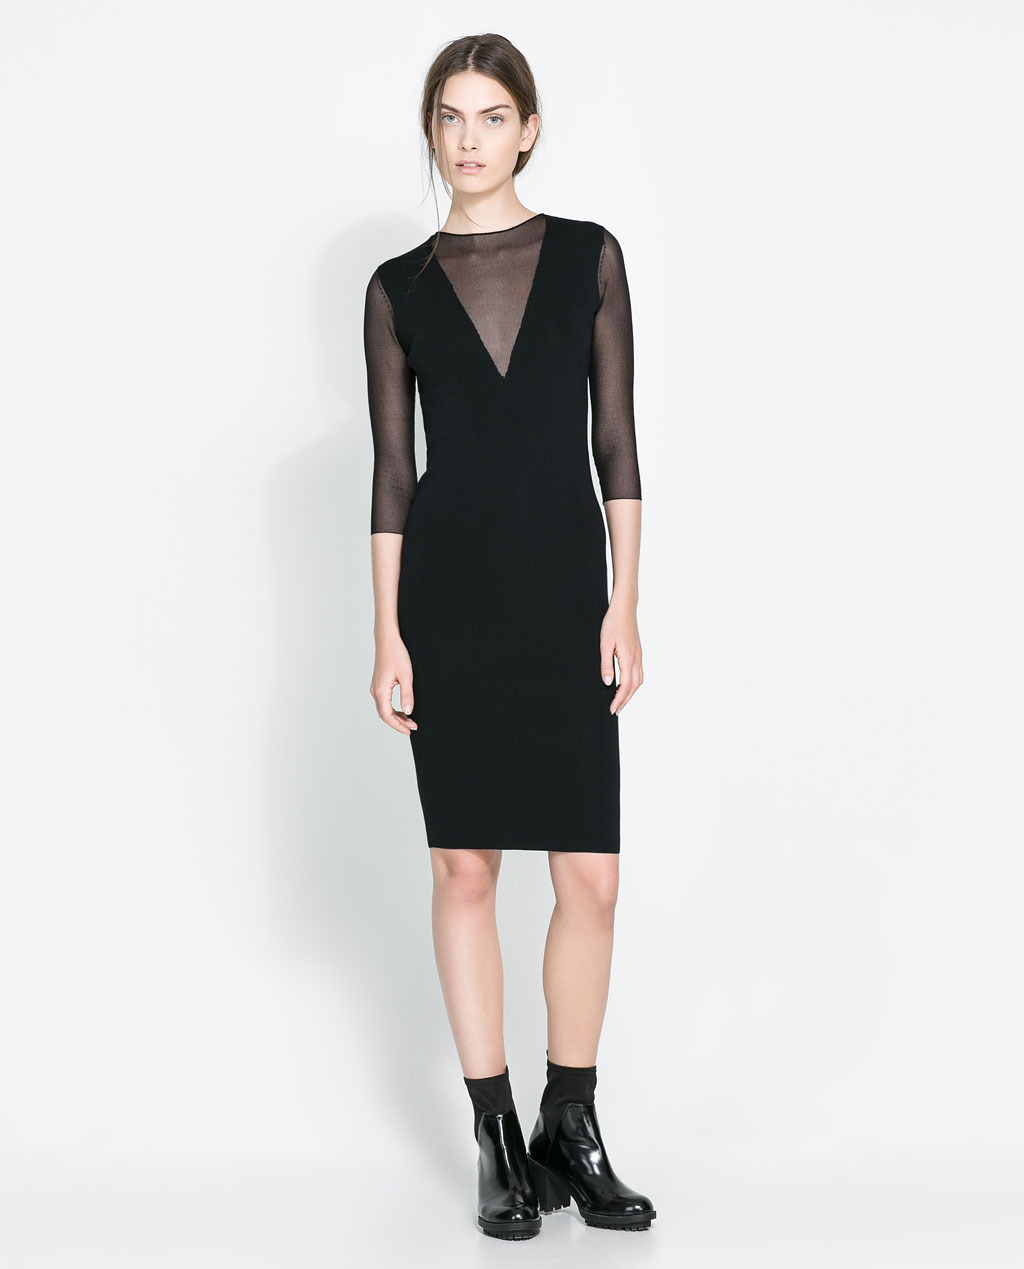 Dress With Sheer Neckline - fit: tight; pattern: plain; style: bodycon; predominant colour: black; occasions: evening, occasion; length: just above the knee; neckline: crew; sleeve length: 3/4 length; sleeve style: standard; pattern type: fabric; texture group: jersey - stretchy/drapey; fibres: viscose/rayon - mix; trends: gothic romance; season: a/w 2013